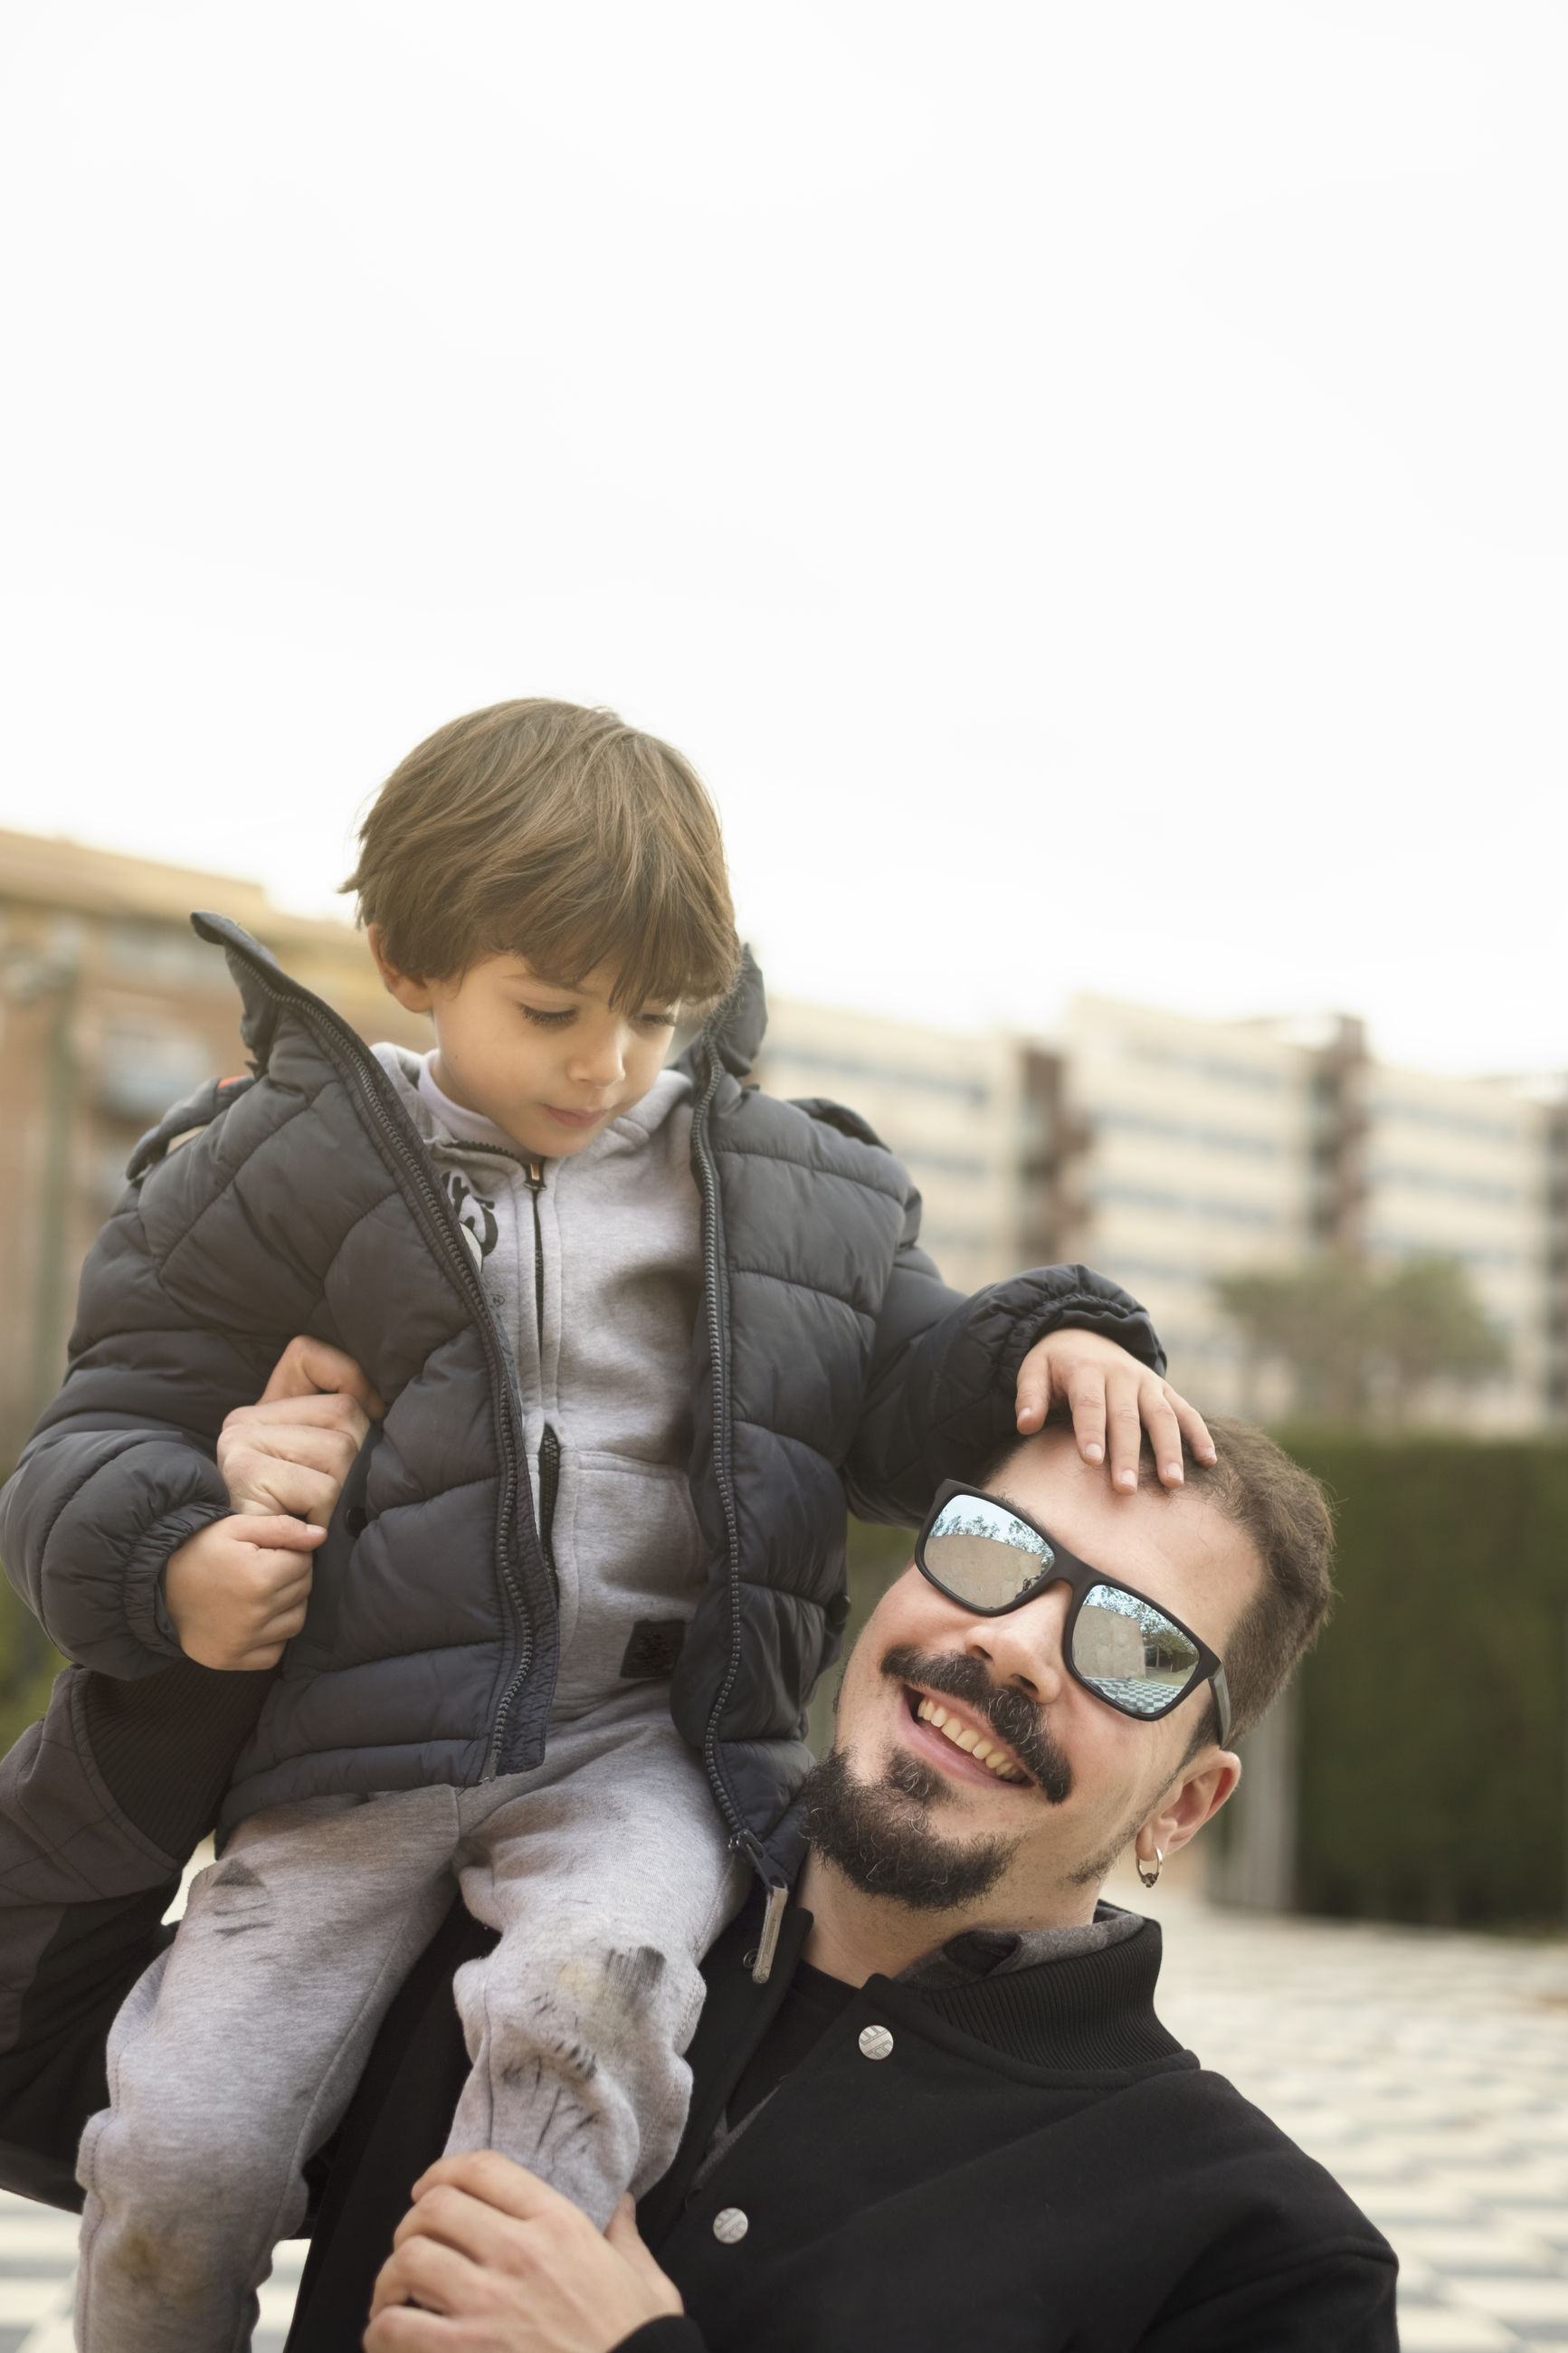 Portrait of happy father carrying son on shoulder while standing outdoors